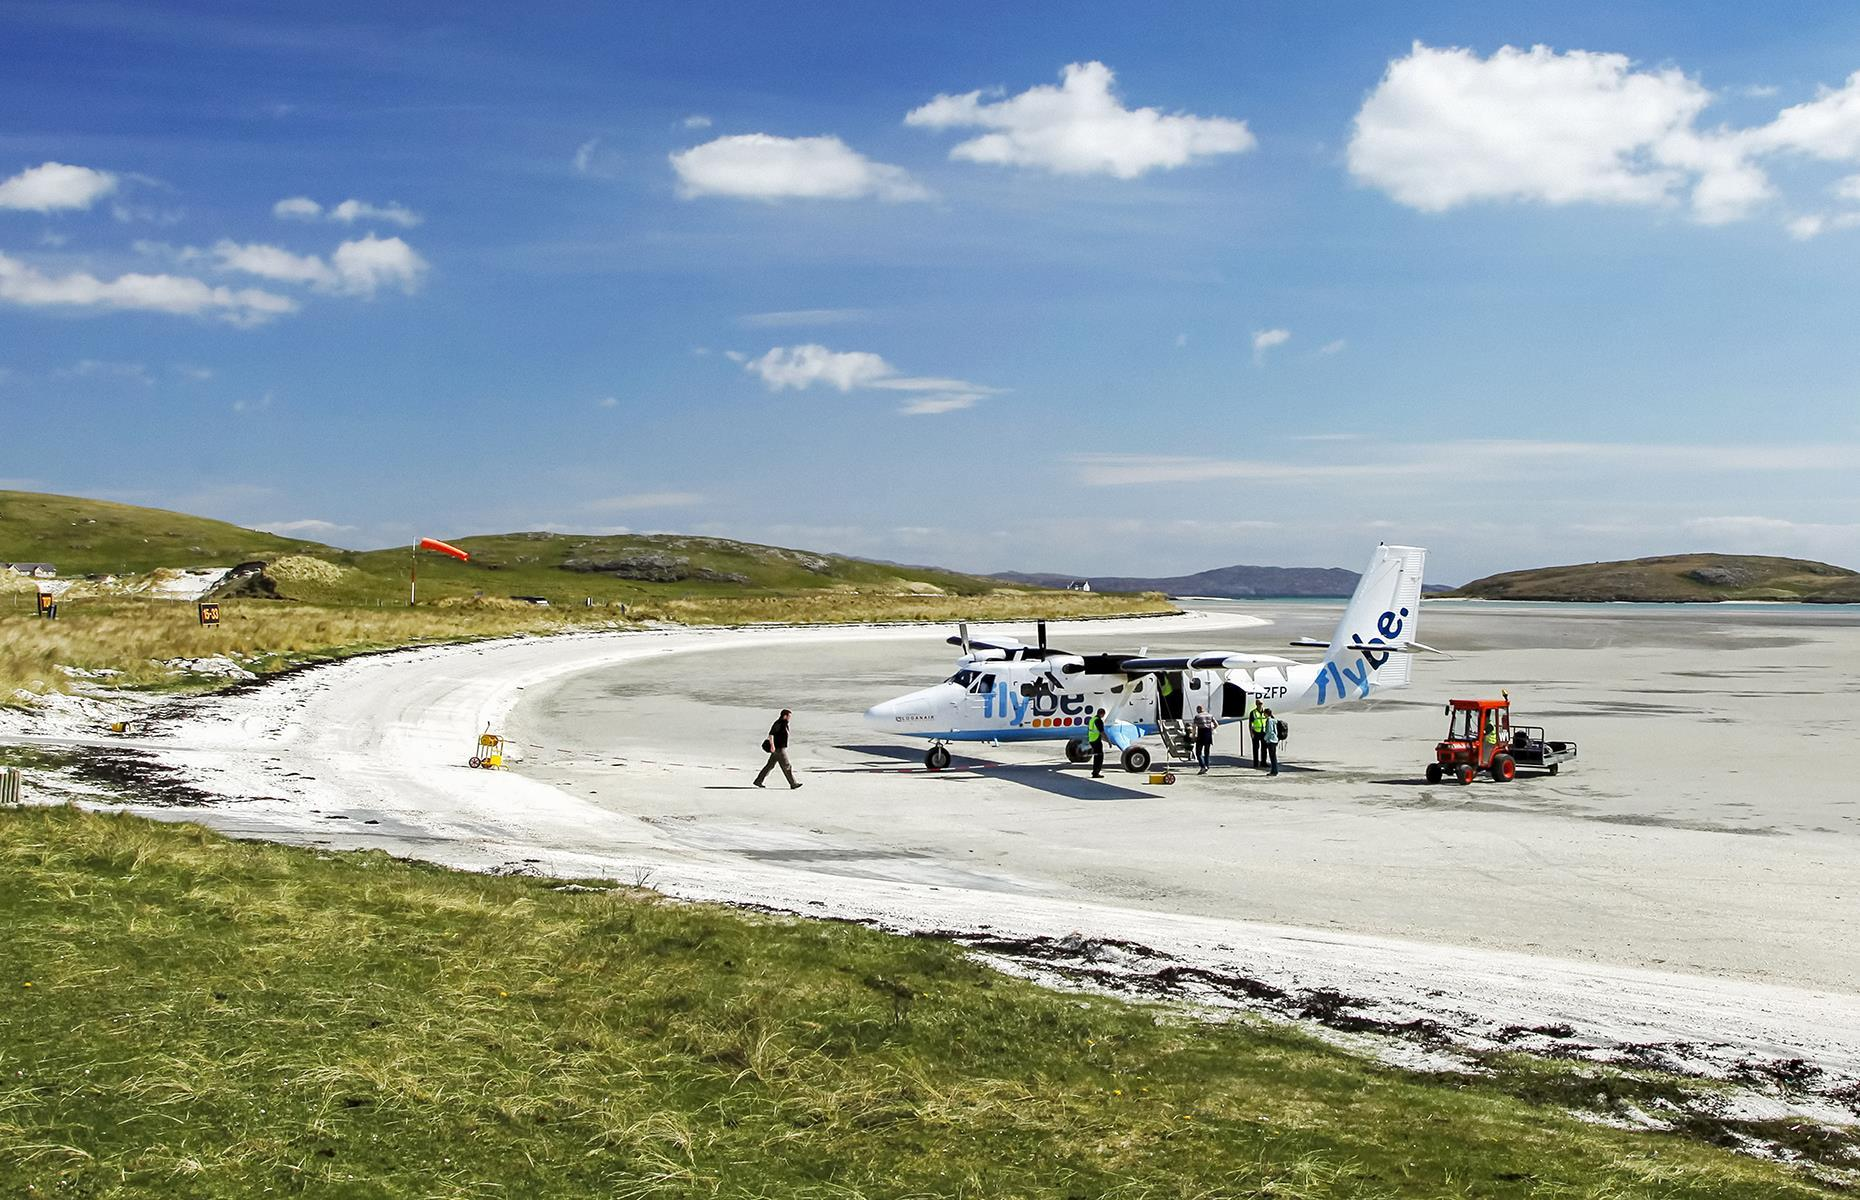 Slide 7 of 44: The stunning Hebridean island of Barra is known for its rugged landscapes and unspoiled coastline, but it's also famous for its unusual runway. Rather than a landing strip, planes descend onto the lovely white sands of Tràigh Mhòr beach. It's said to be the only beach airport to operate scheduled flights.